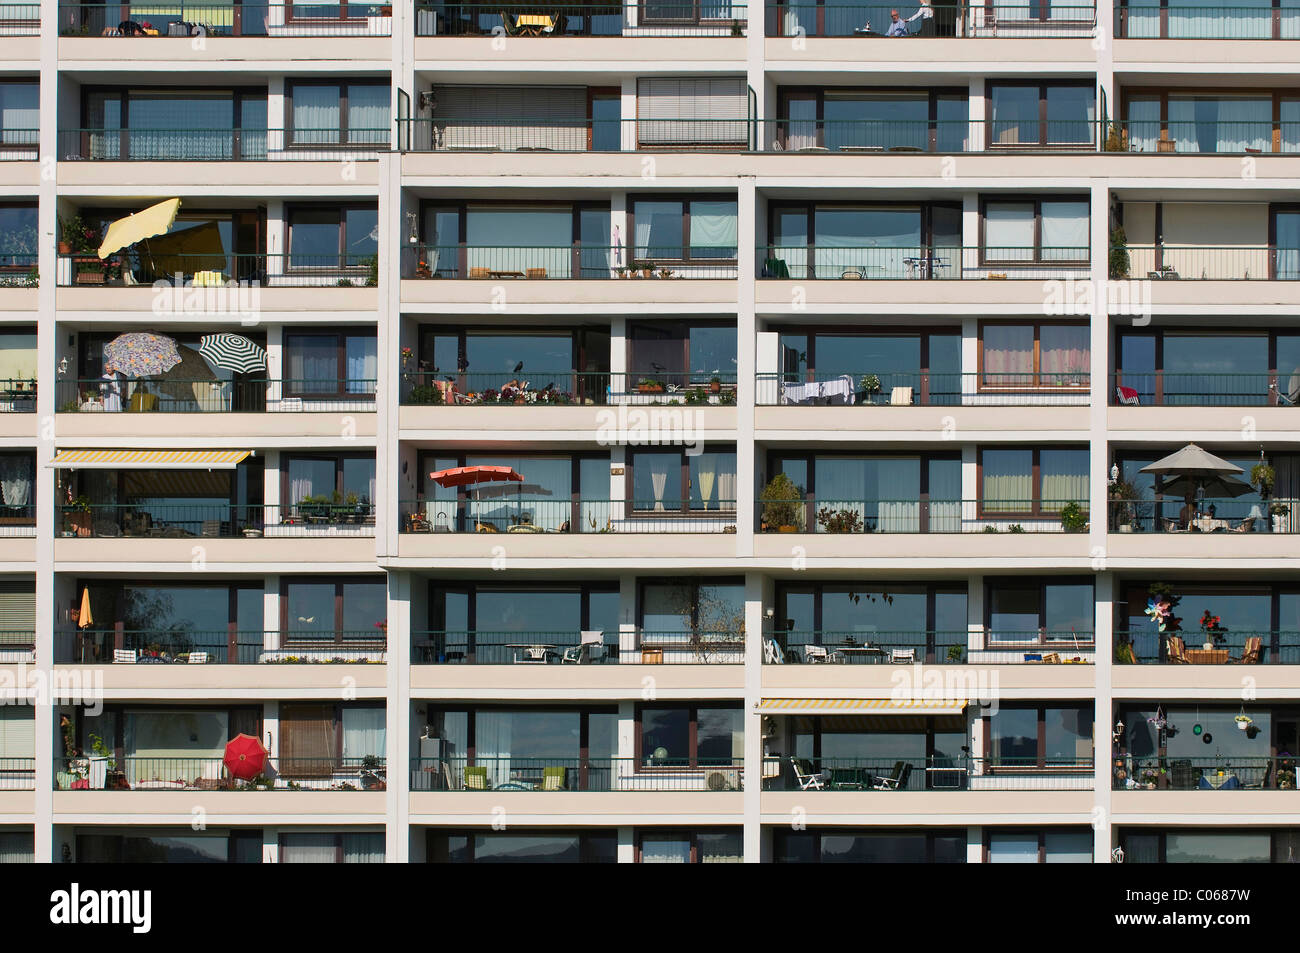 balconies stockfotos balconies bilder alamy. Black Bedroom Furniture Sets. Home Design Ideas